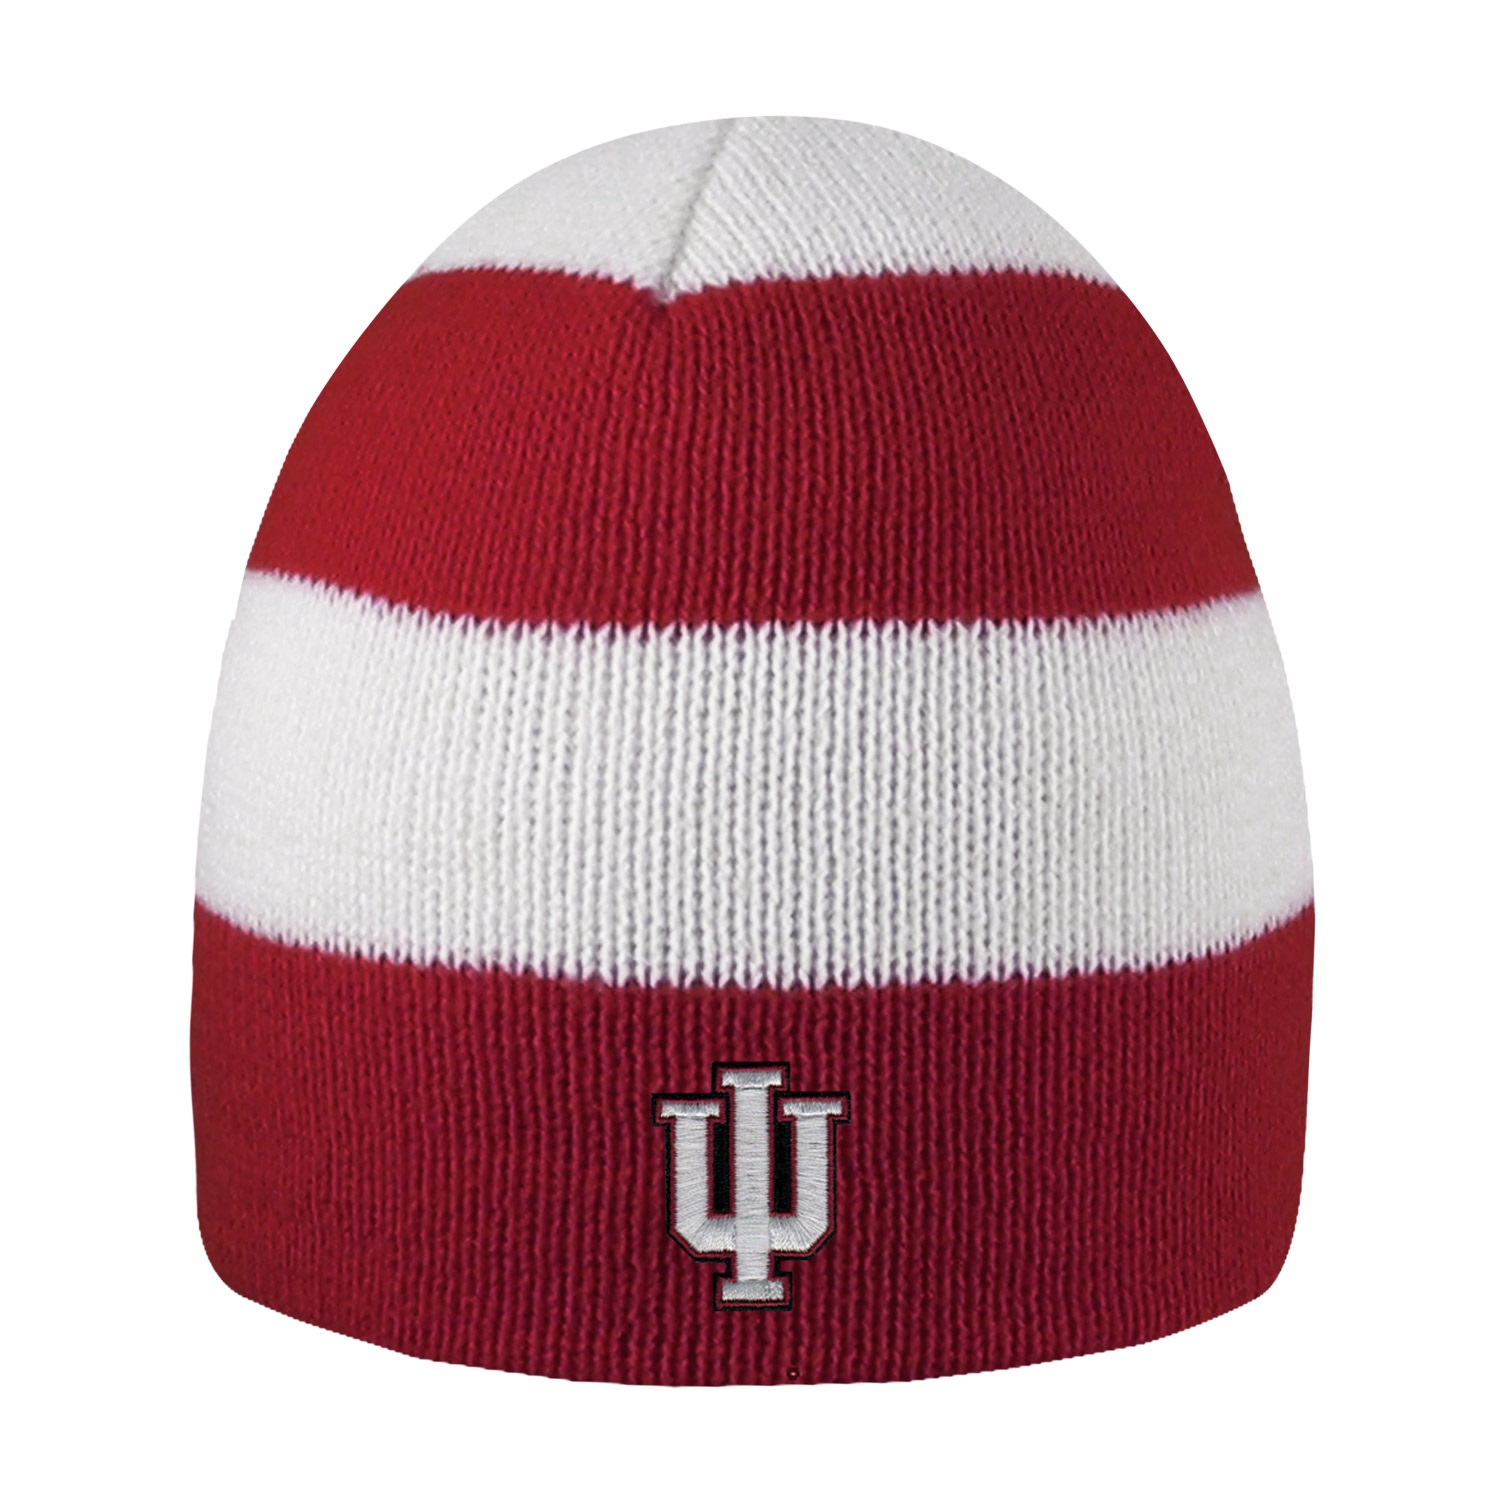 Indiana University Rugby Striped Knit Beanie by